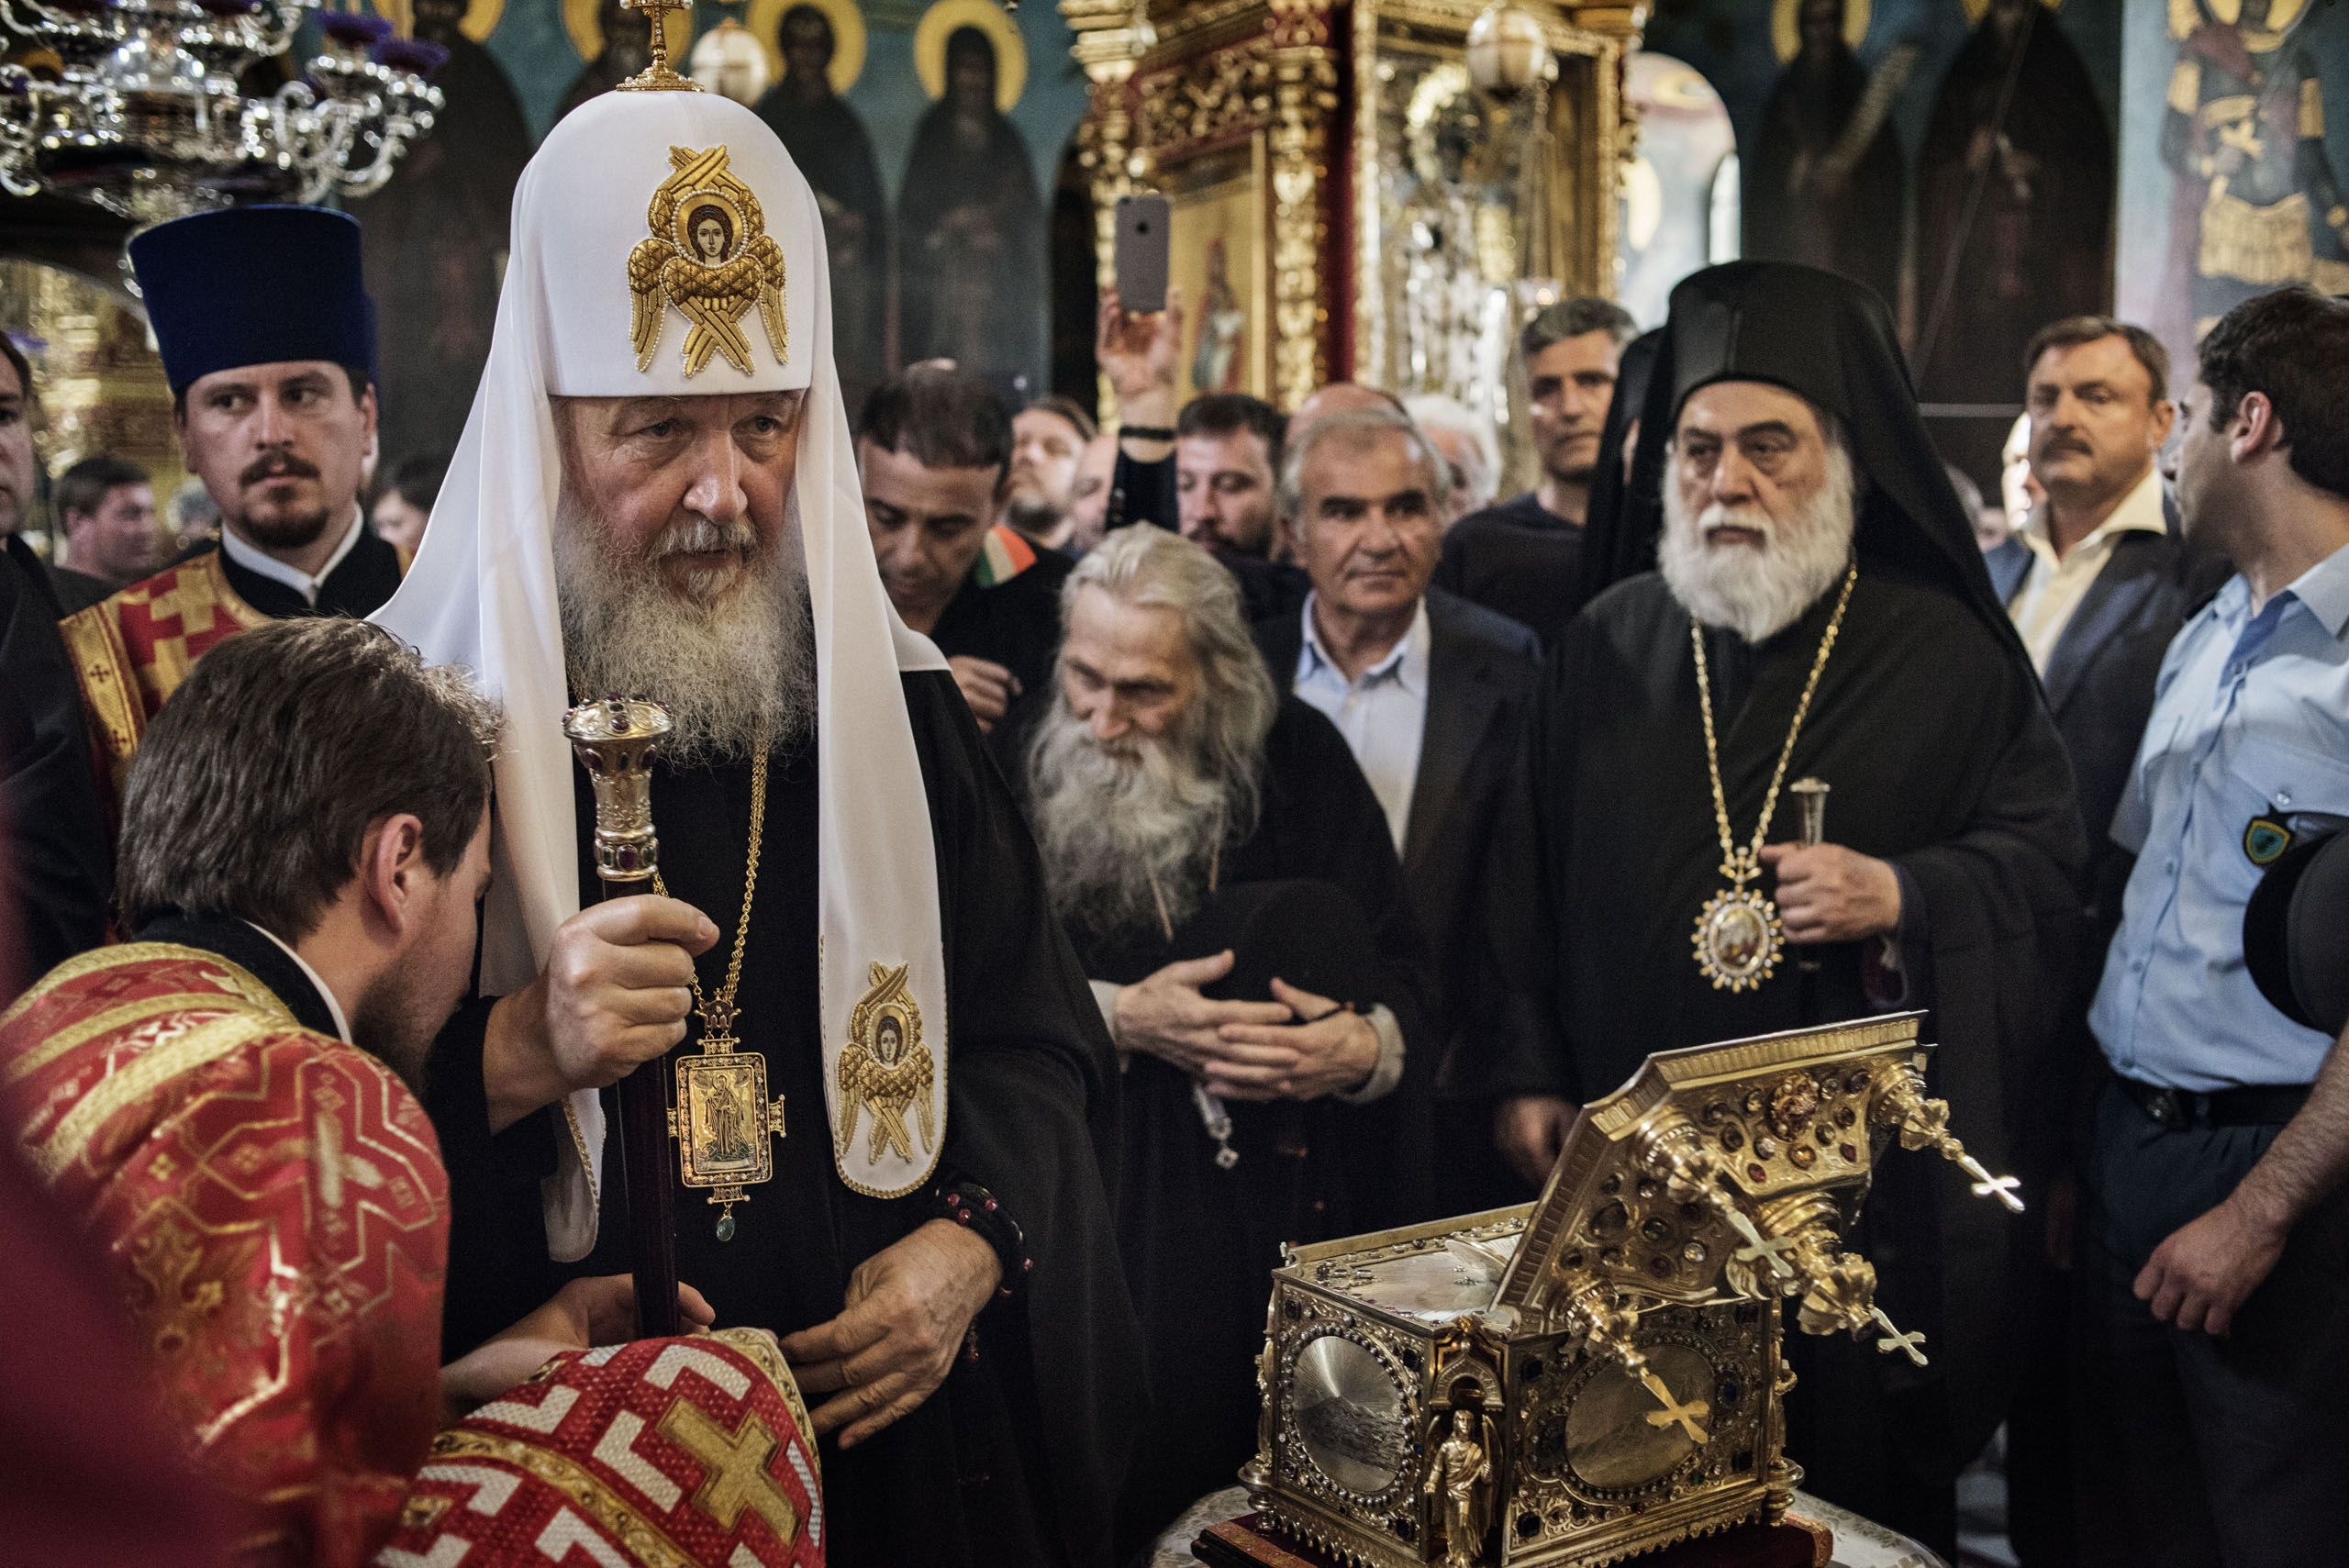 Patriarch Kirill of the Russian Orthodox Church stands before the reliquary, a bejeweled box containing a holy relic, at the main church in St. Panteleimon, the Russian monastery on Mount Athos, in northern Greece, May 27, 2016. Behind him bows the abbot of the monastery, Archimandrite Jeremiah (center), who is 100 years old.